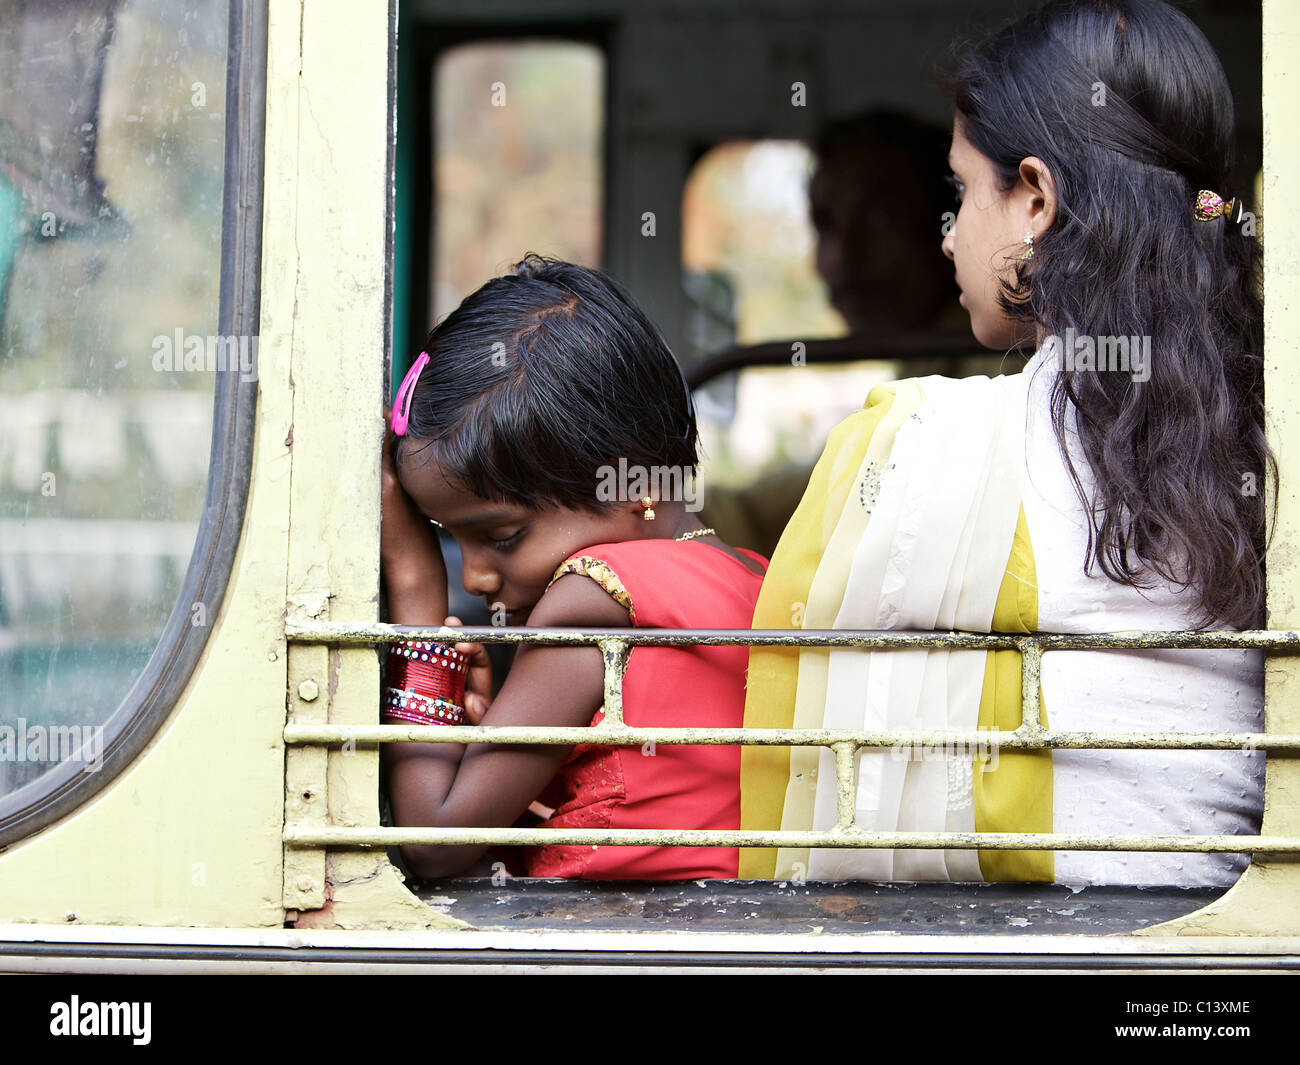 Child asleep on bus, south of Kochi, Kerala, India - Stock Image